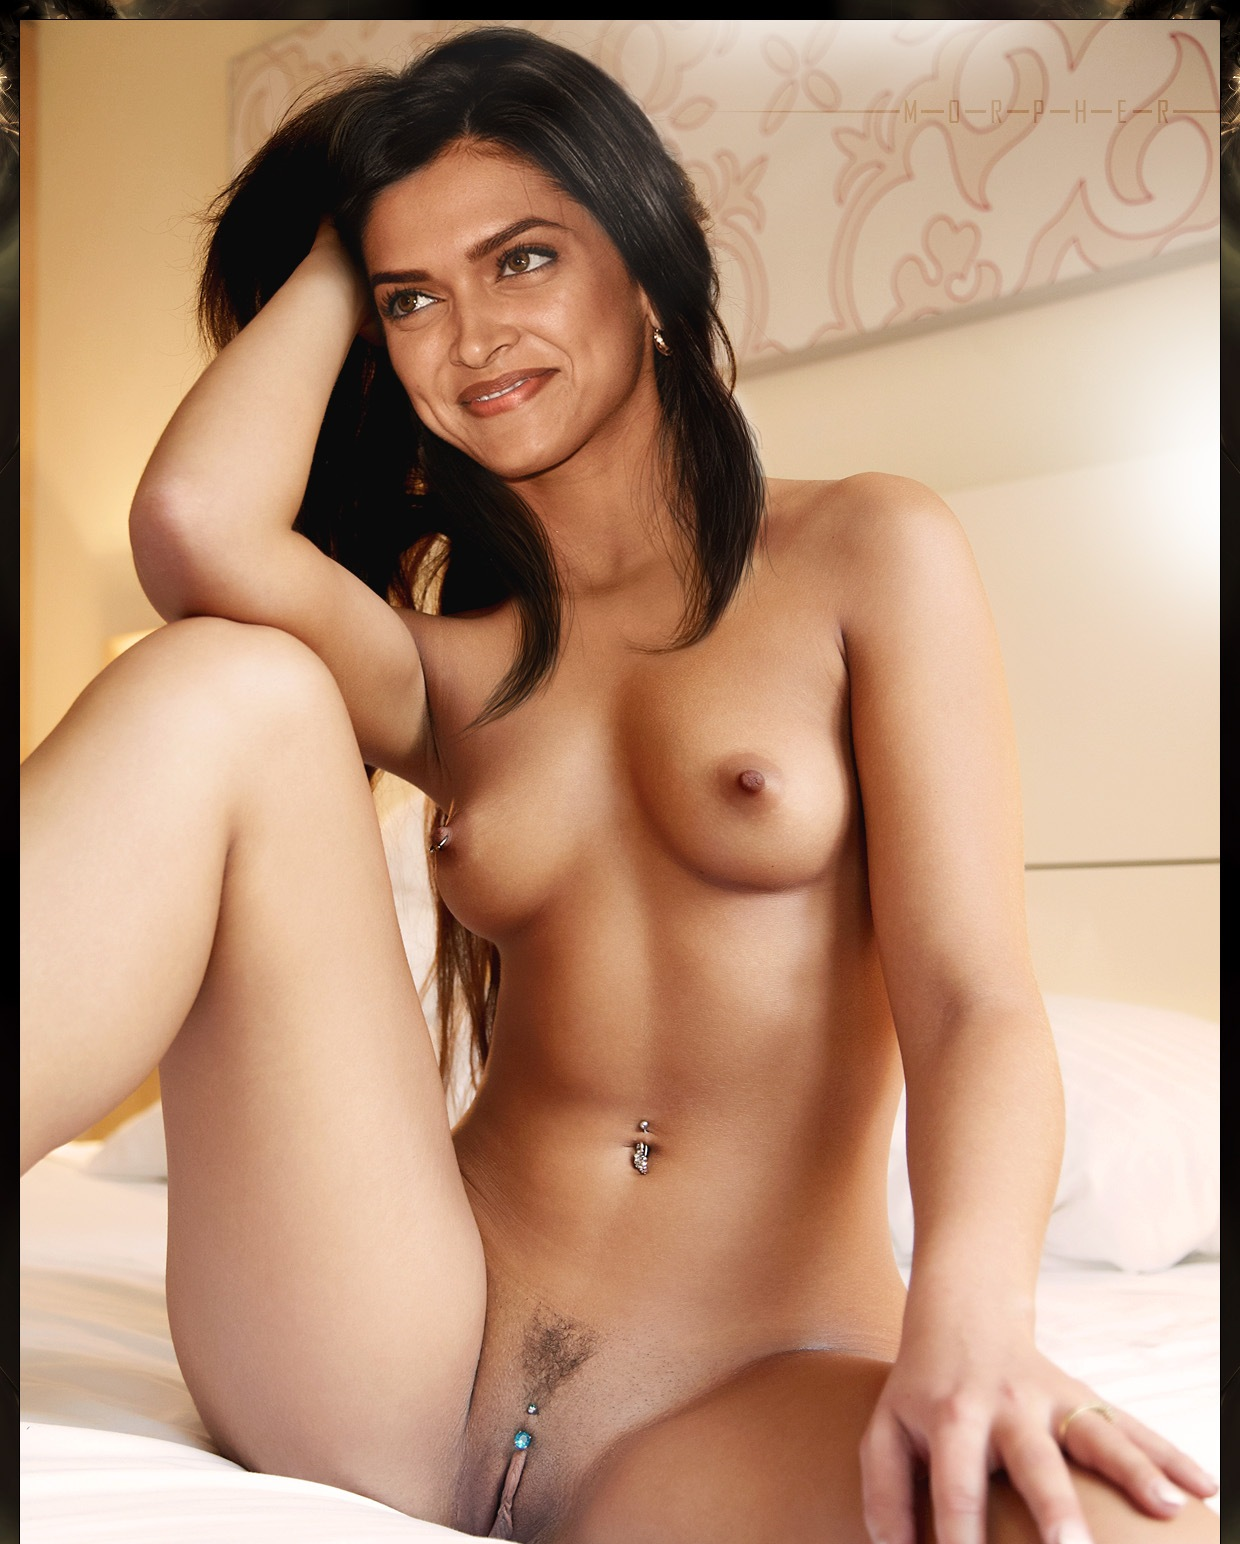 uk hot girls nangi pic